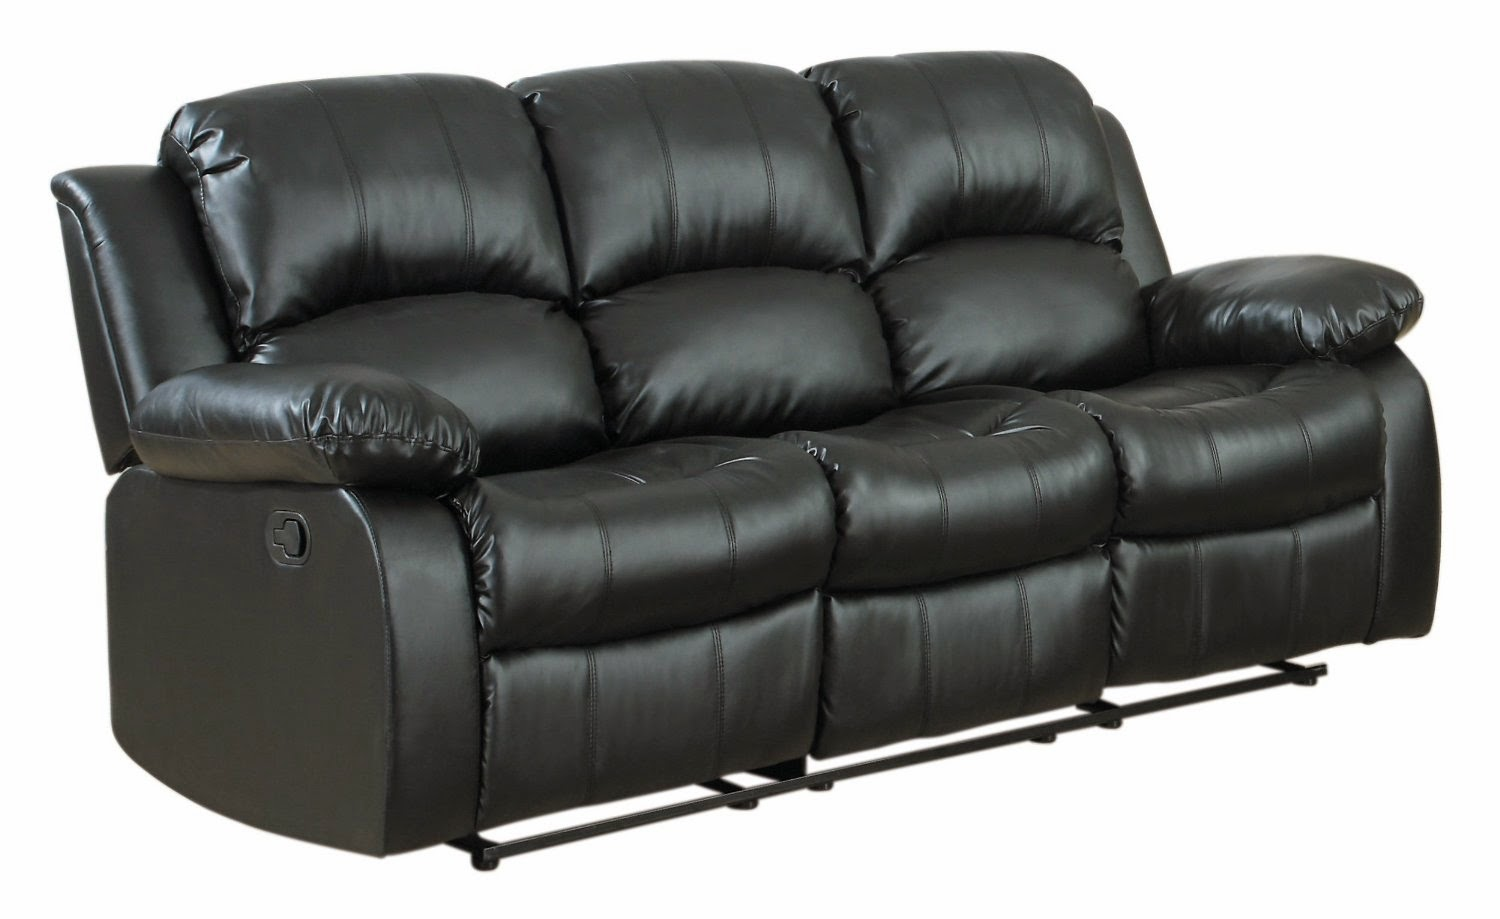 Costco Leather Sofa Canada Bobs Sectional Sofas Reclining For Sale Berkline